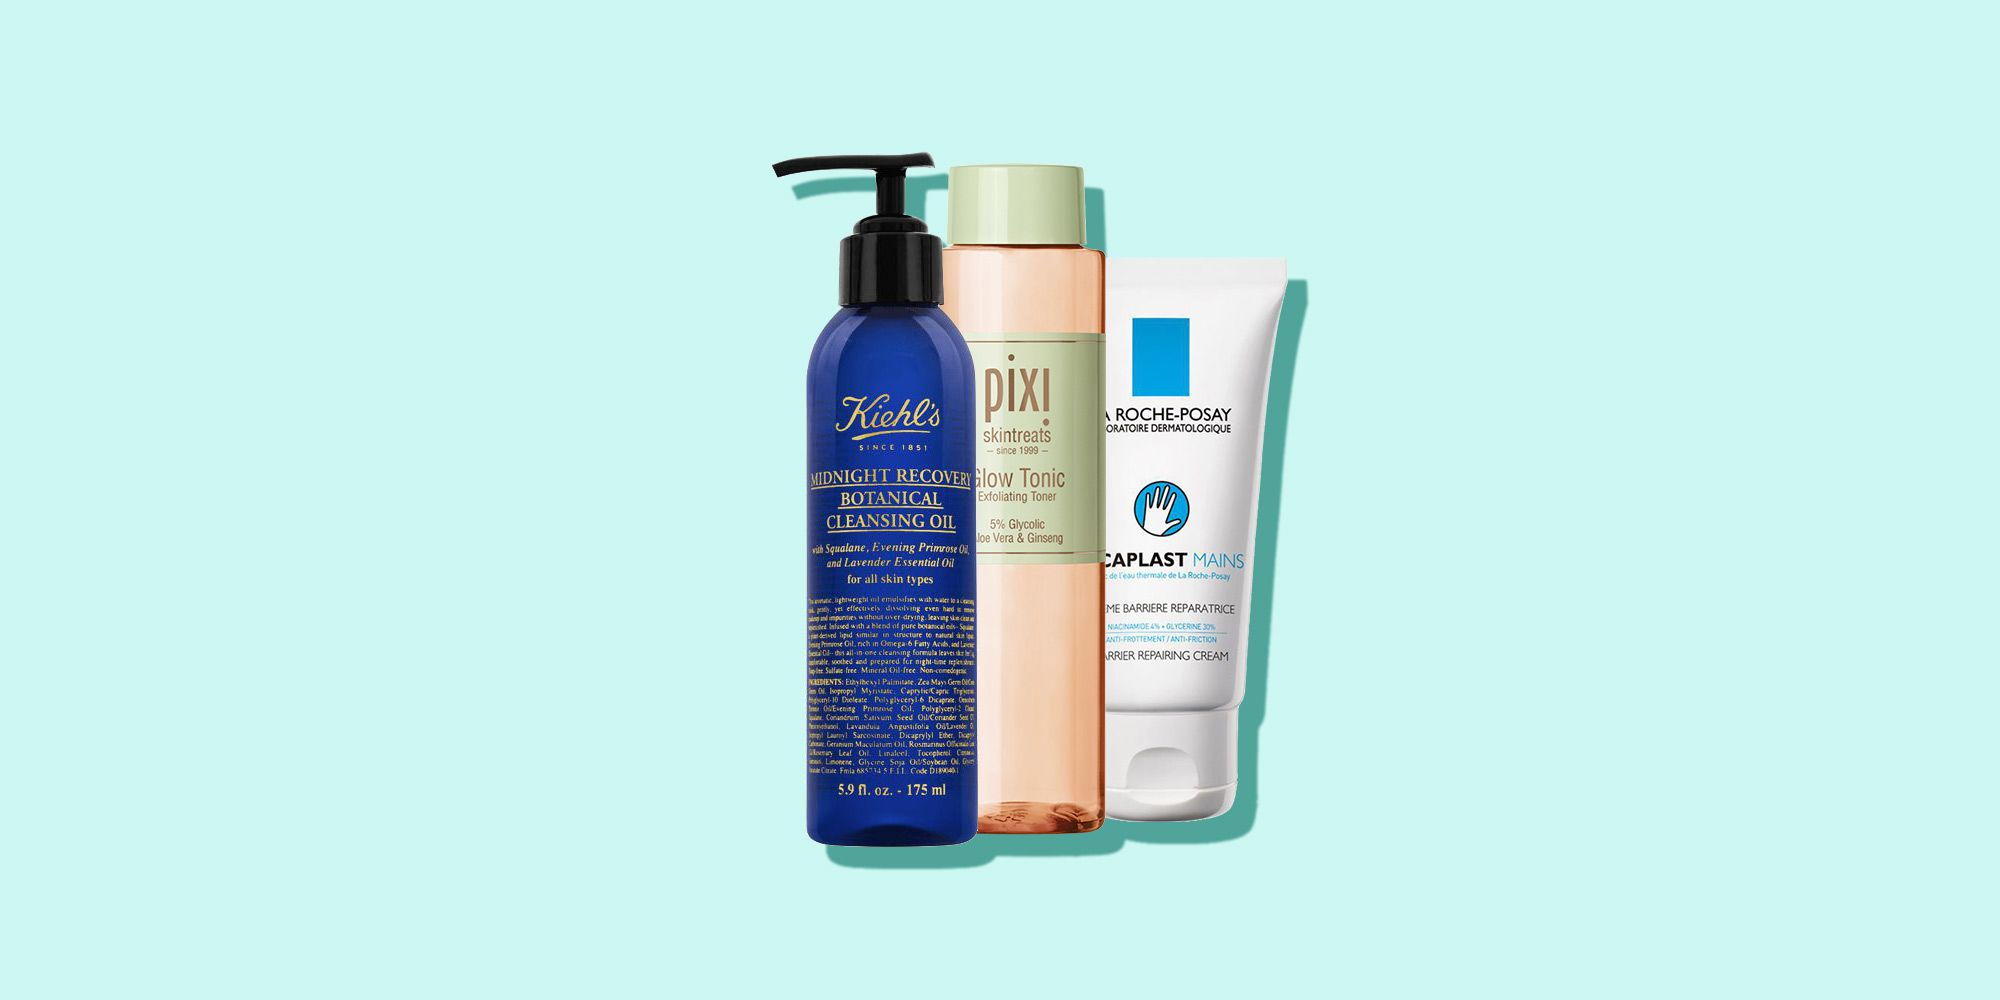 The best winter beauty products for dry skin